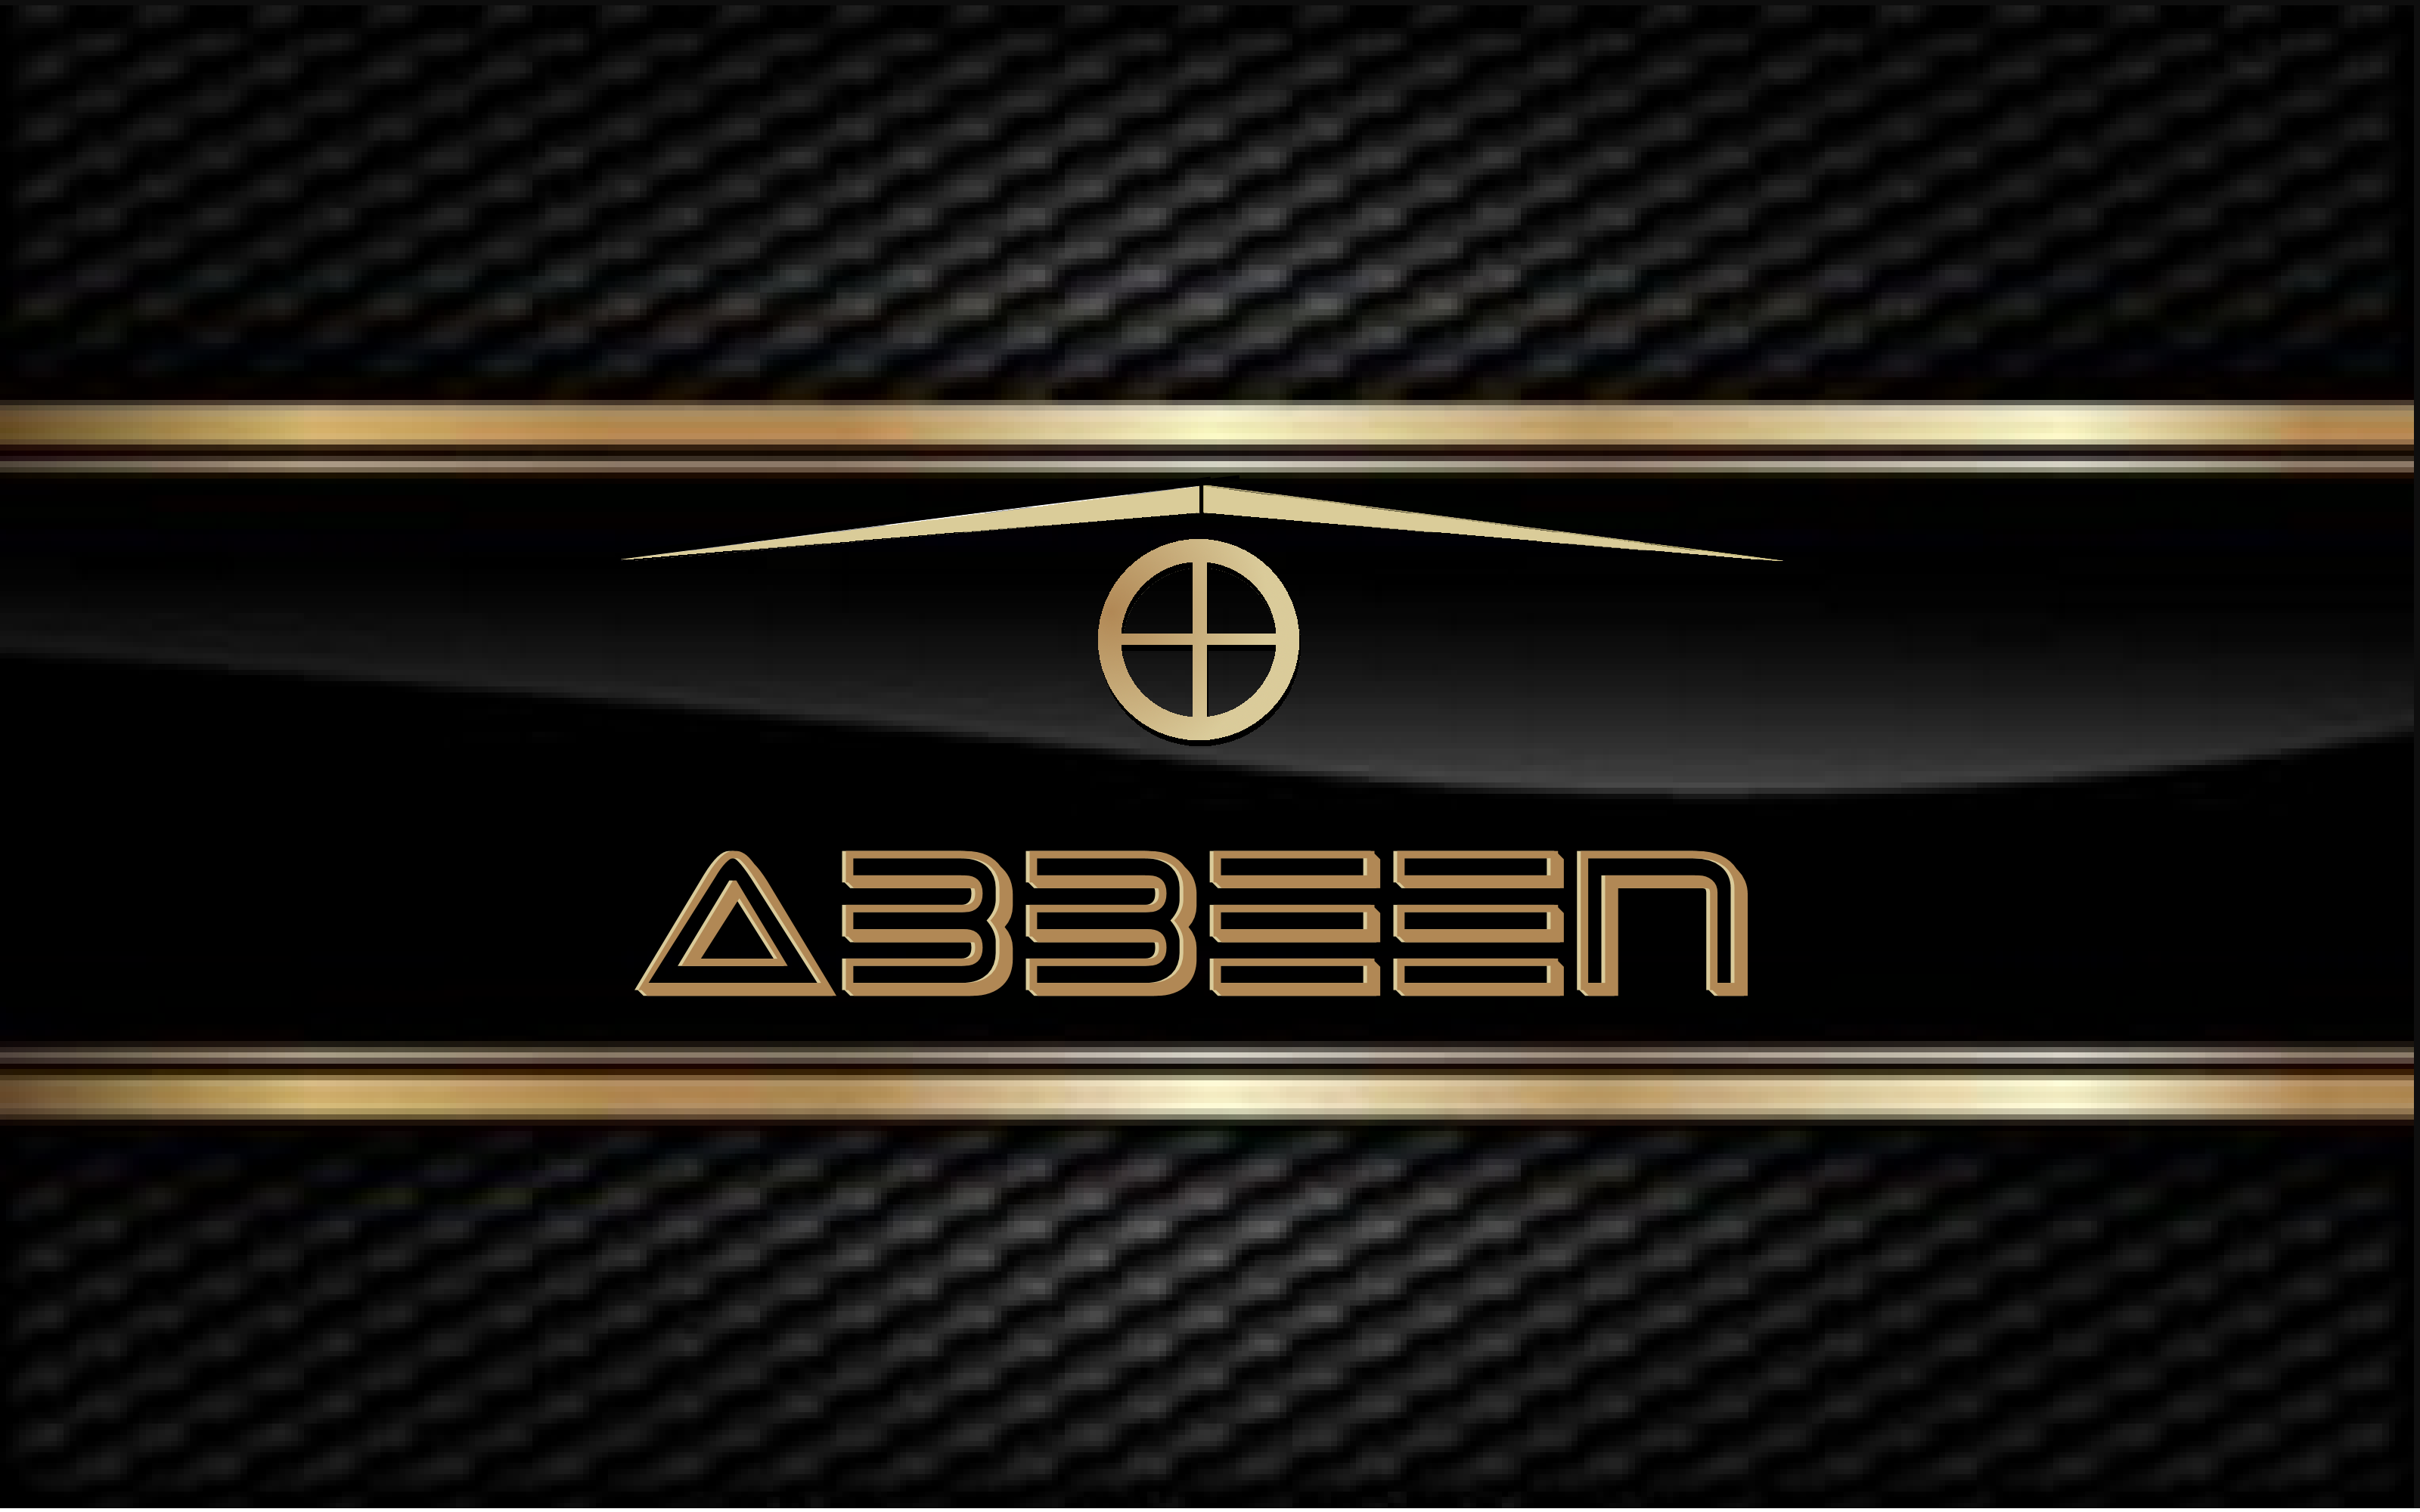 Logo Design by Roberto Bassi - Entry No. 237 in the Logo Design Contest Luxury Logo Design for Abbeem.